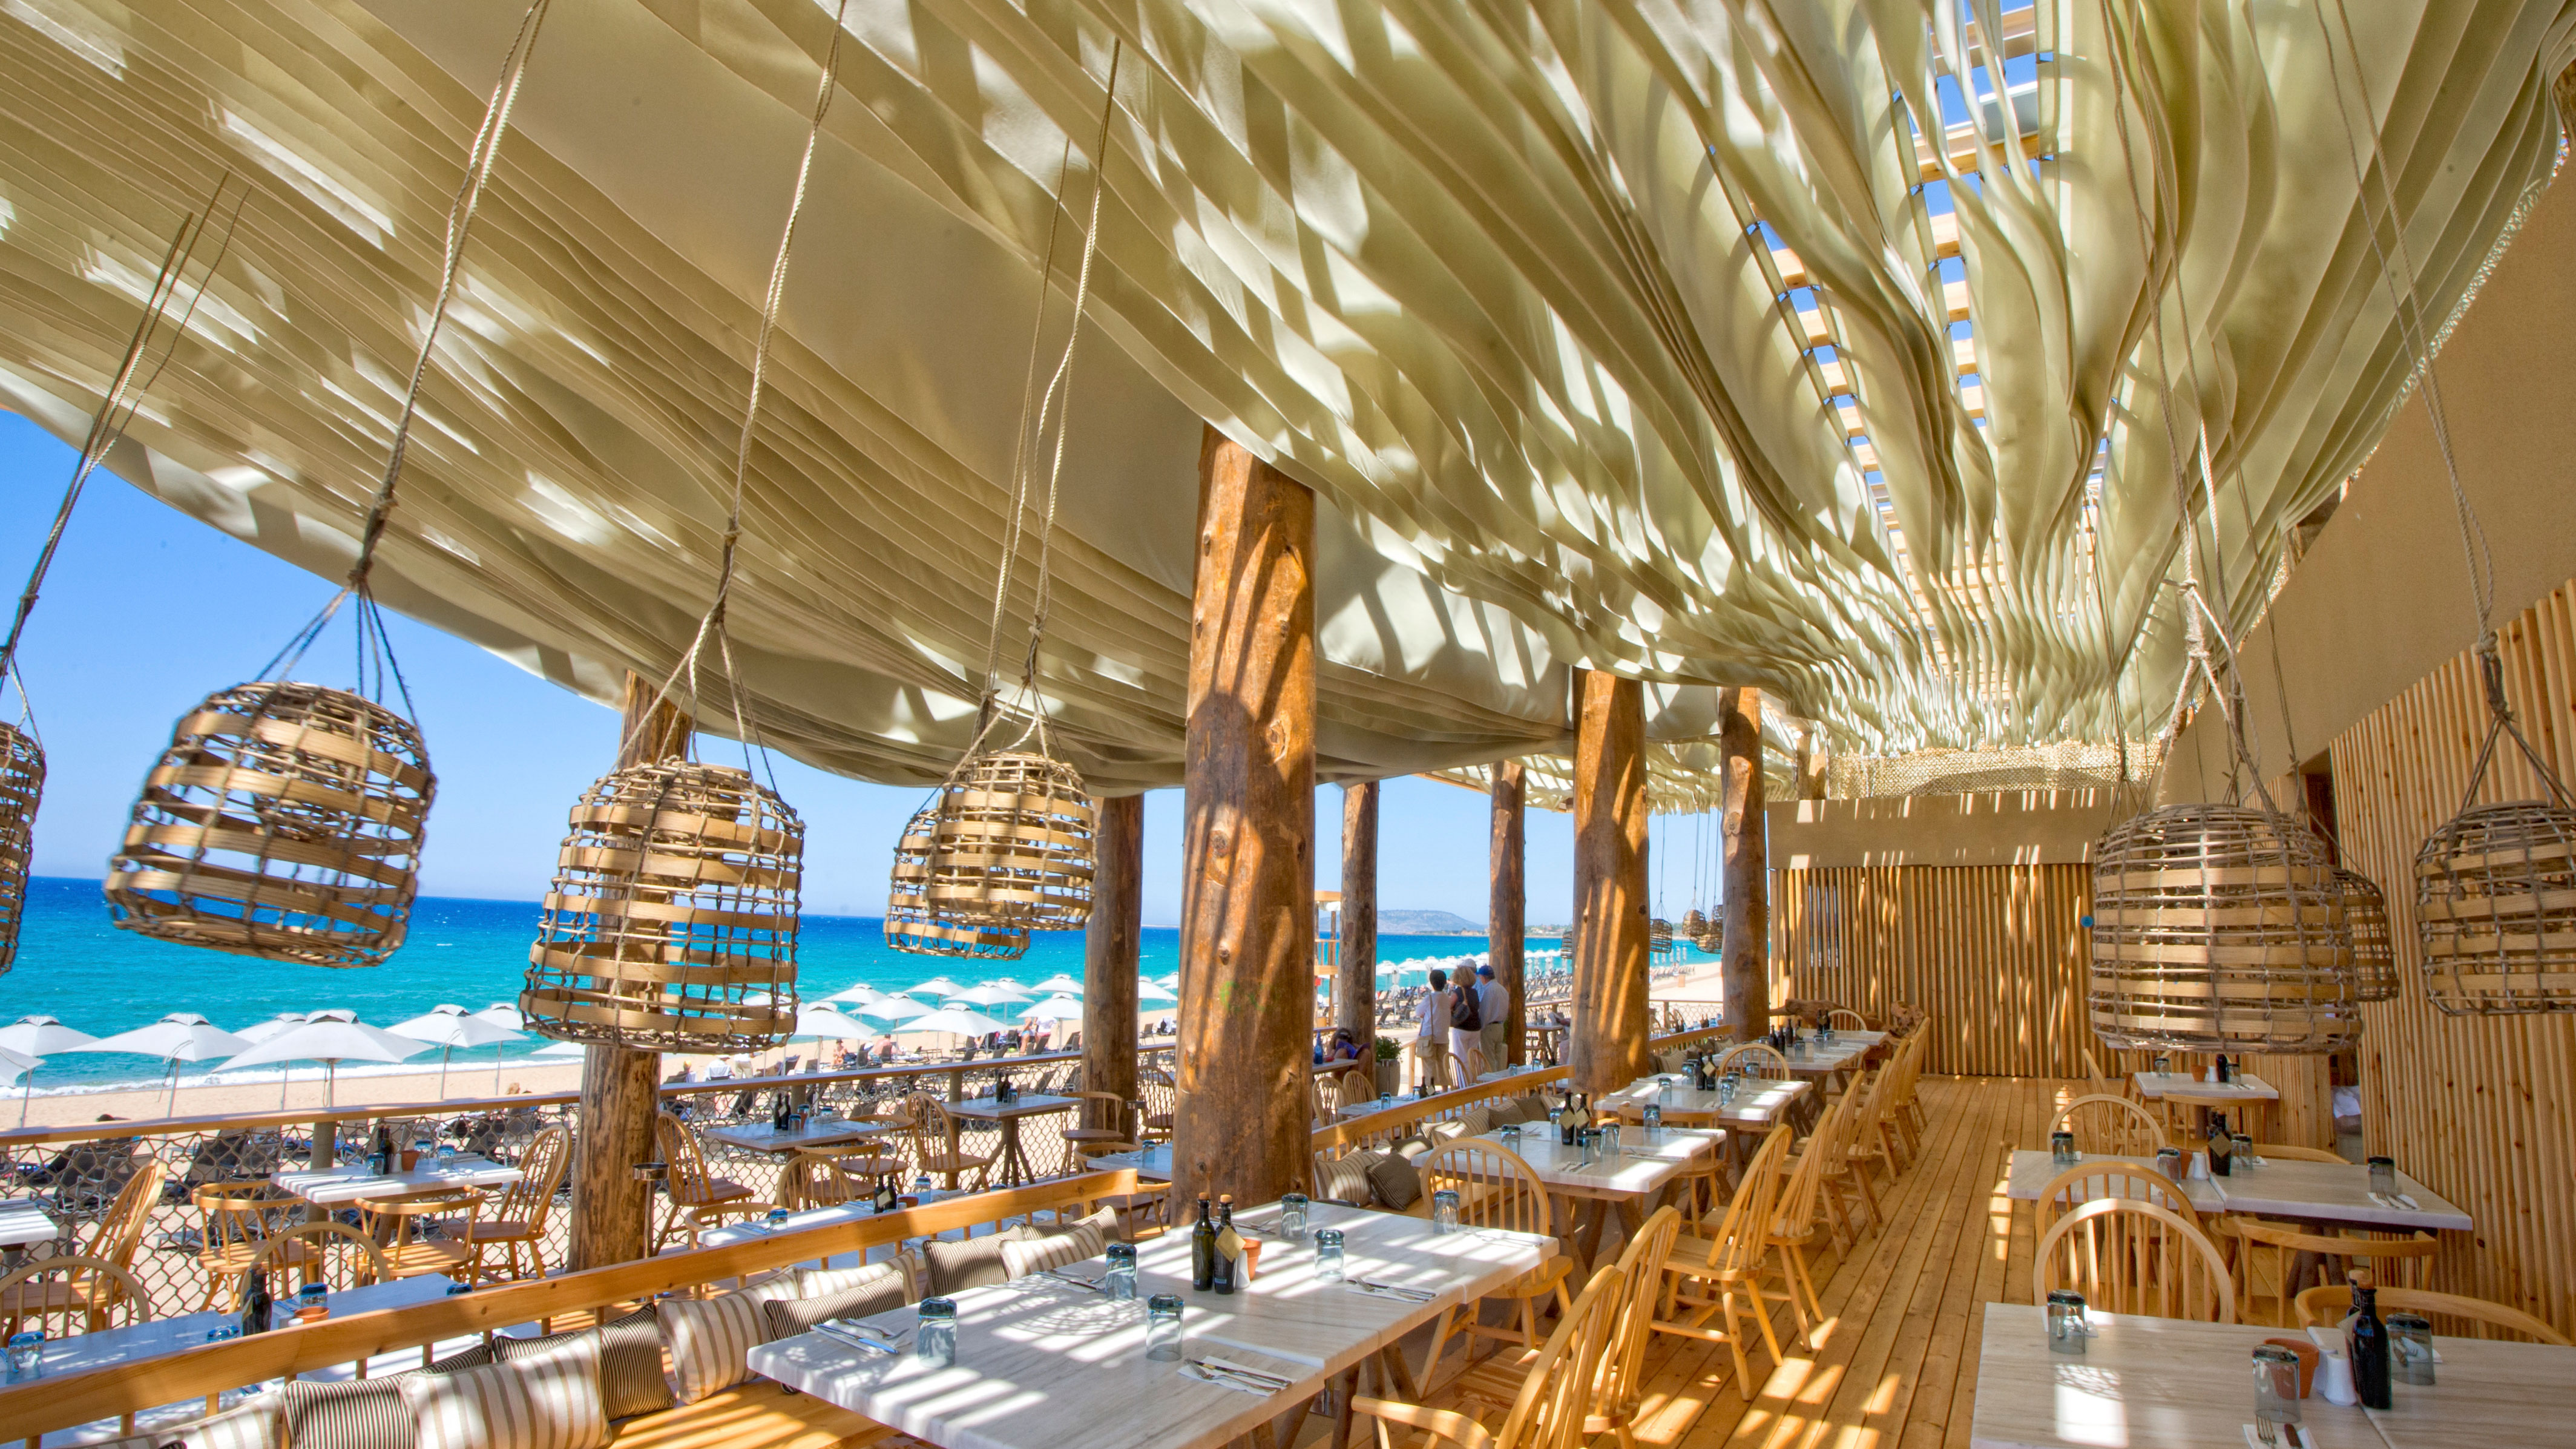 Costa Navarino Resort In Greece Has An Incredible Moving Roof Cnn Travel